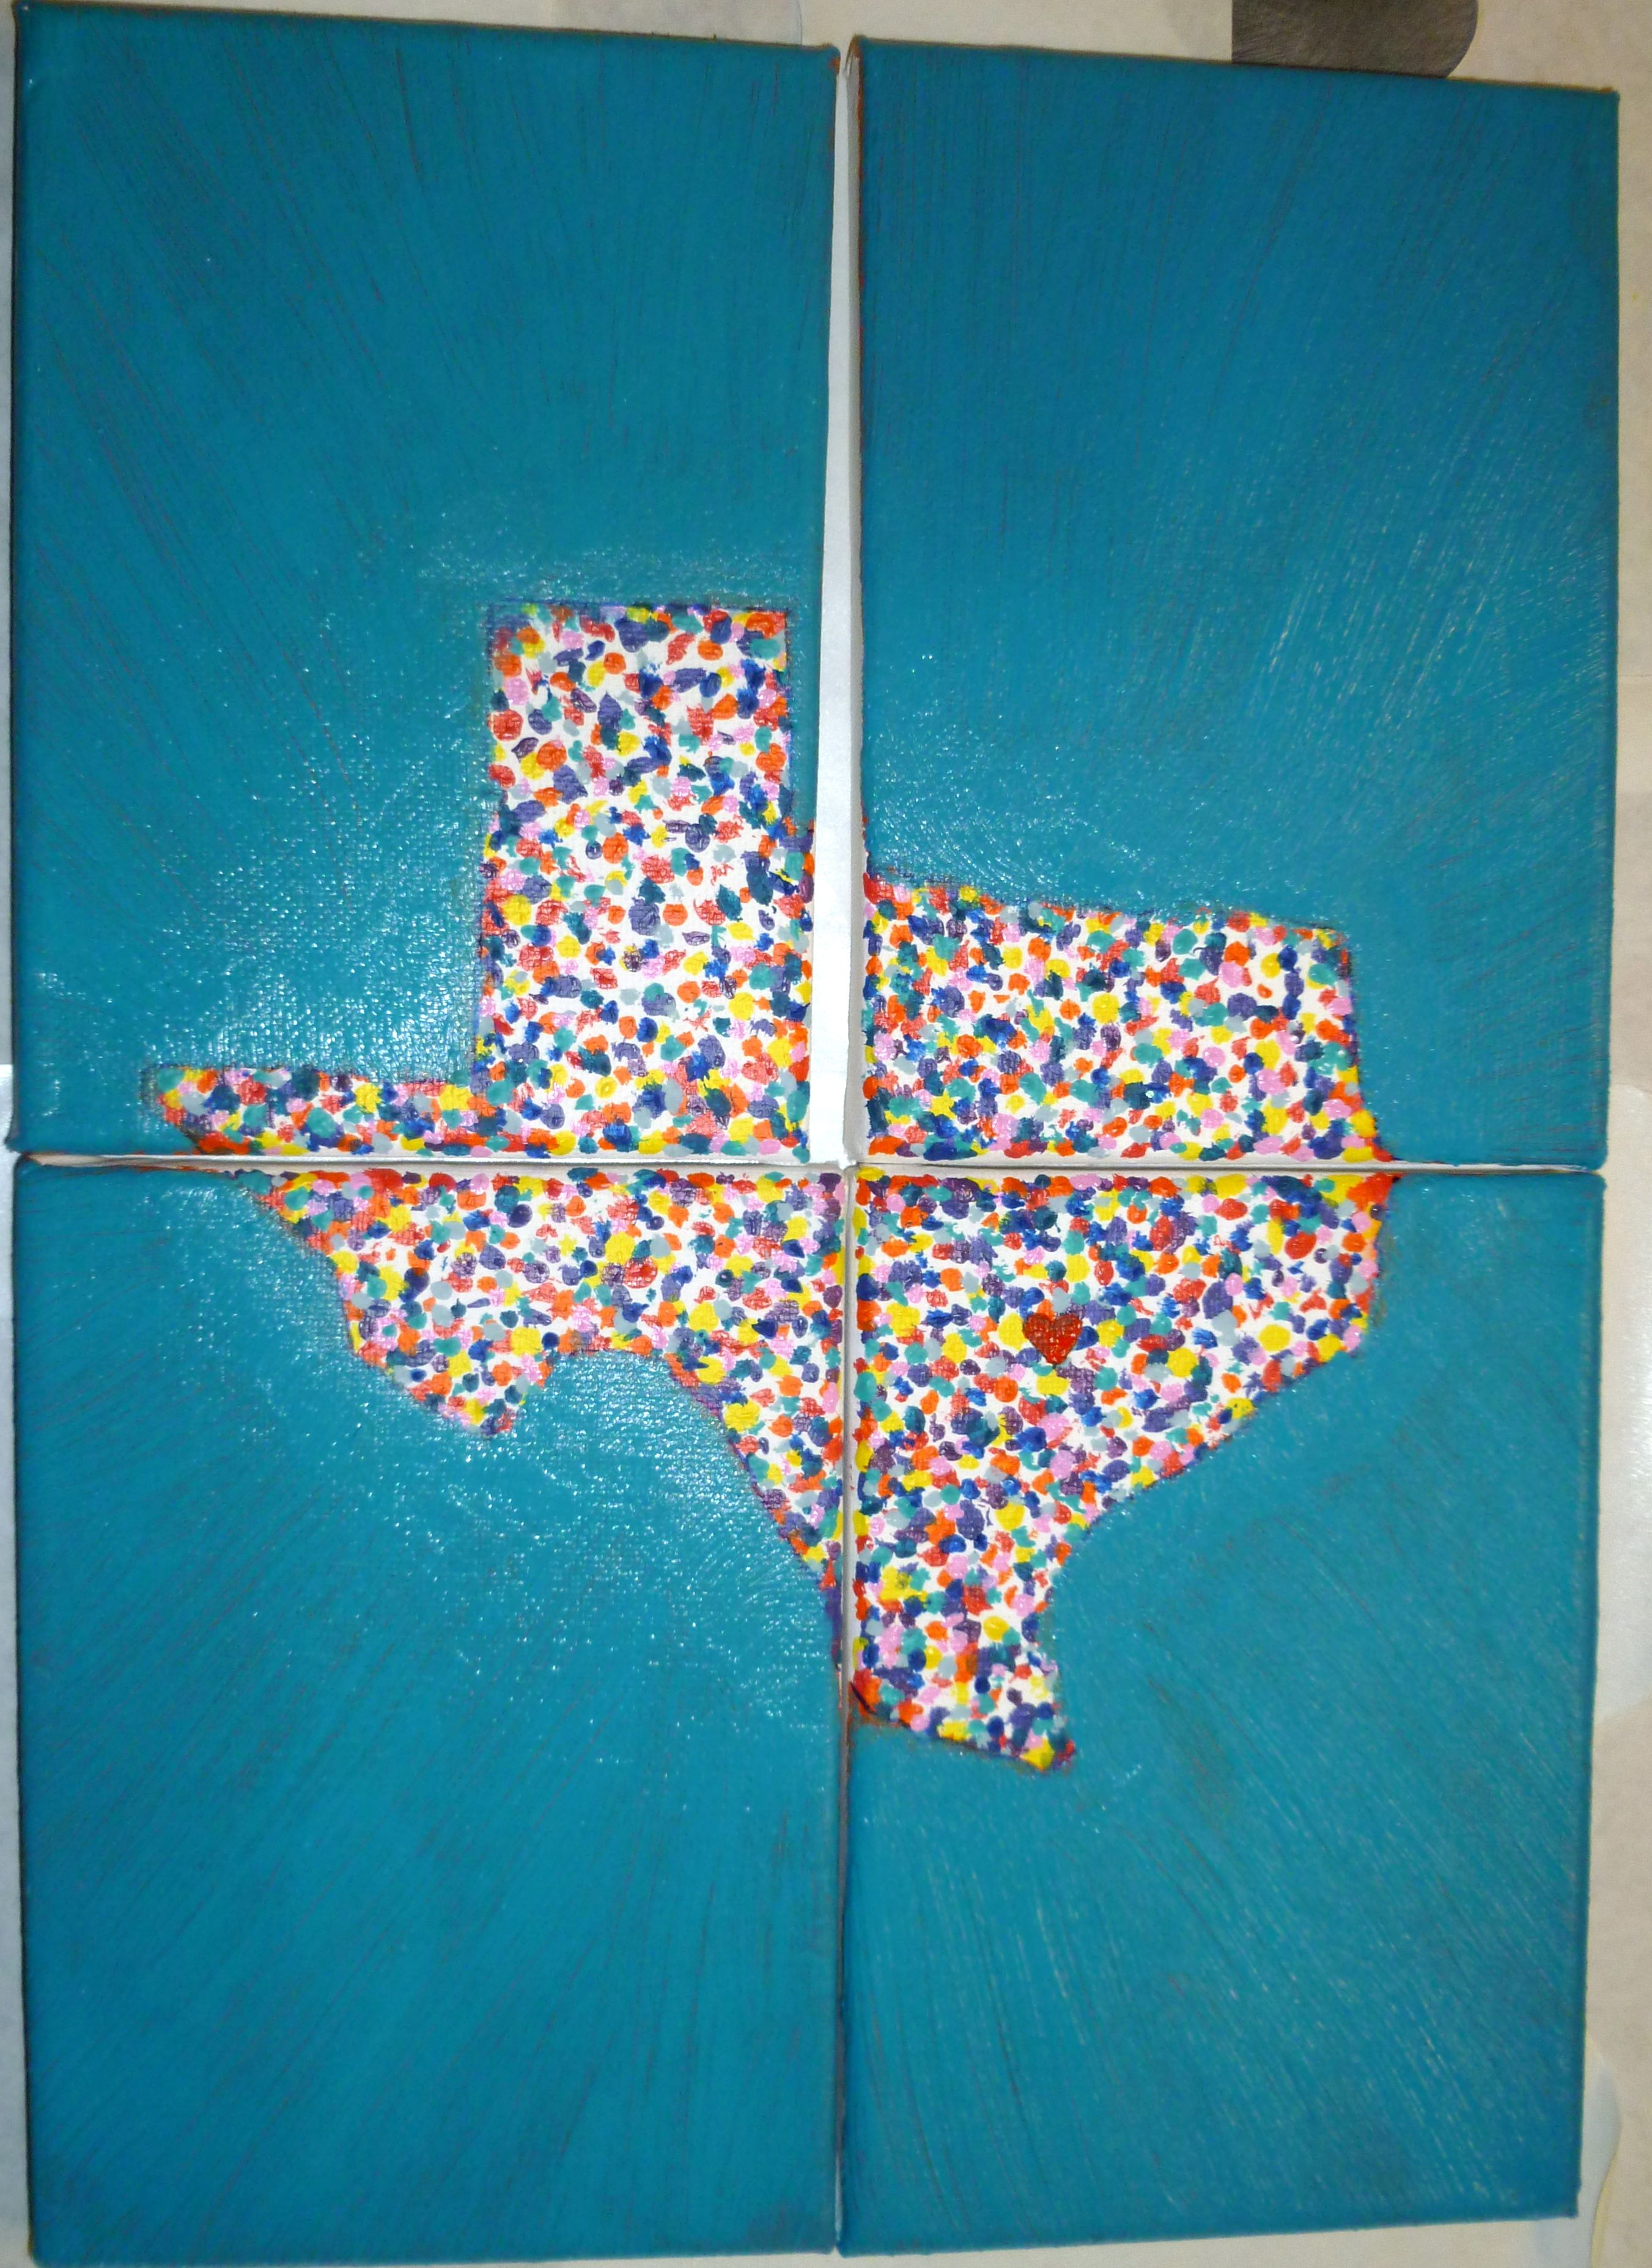 A Dripping Springs, Texas painting.